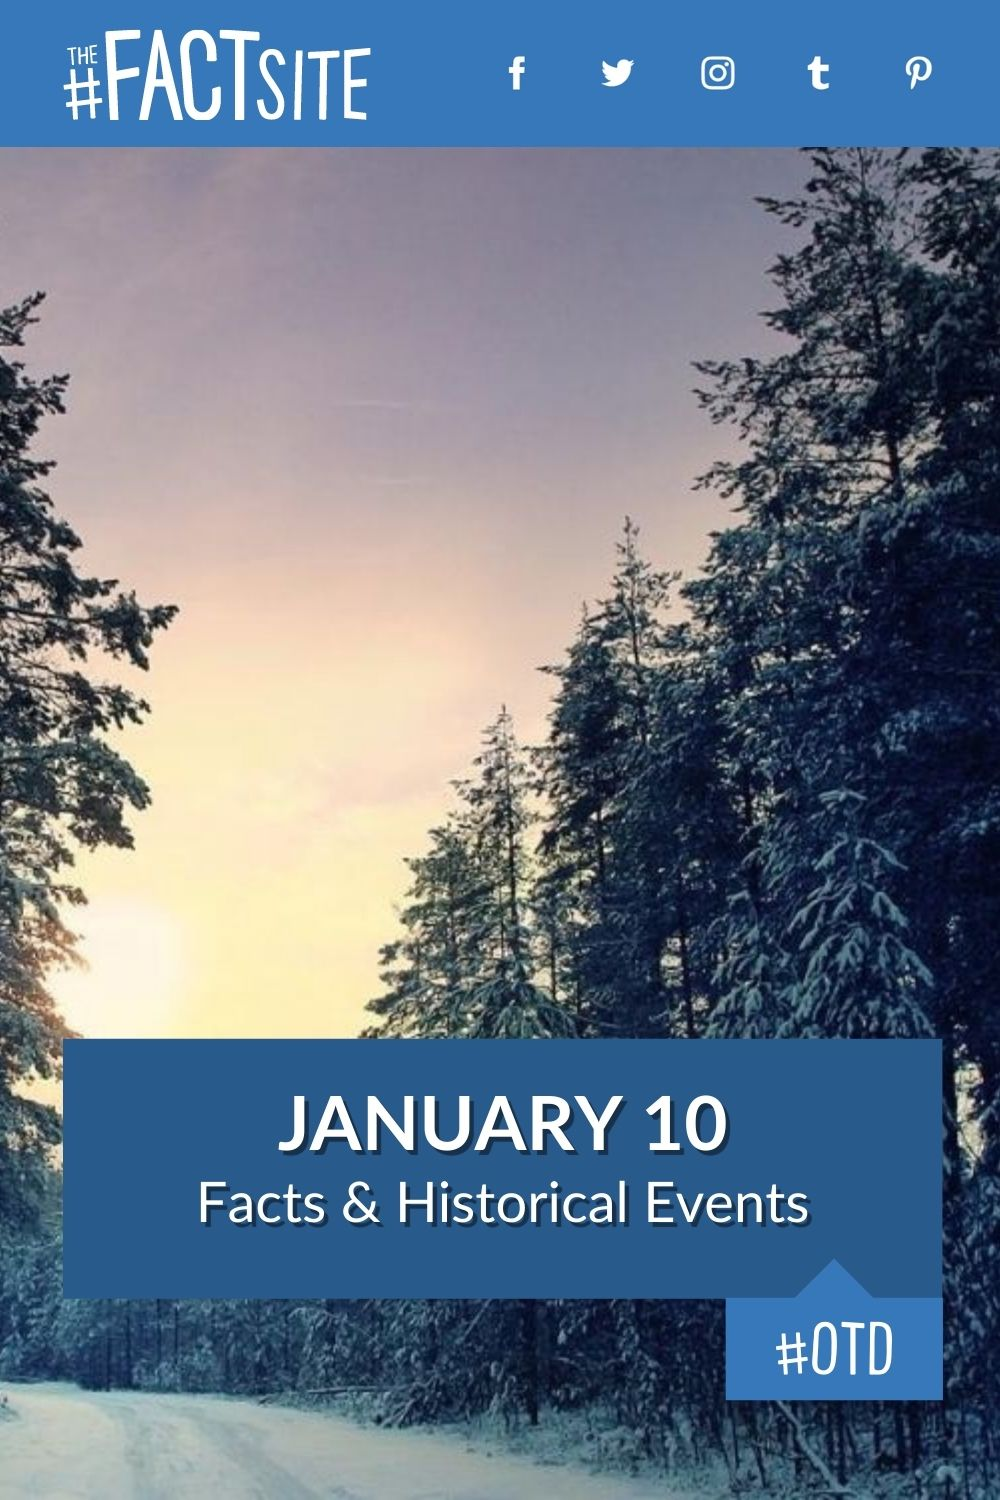 Facts & Historic Events That Happened on January 10